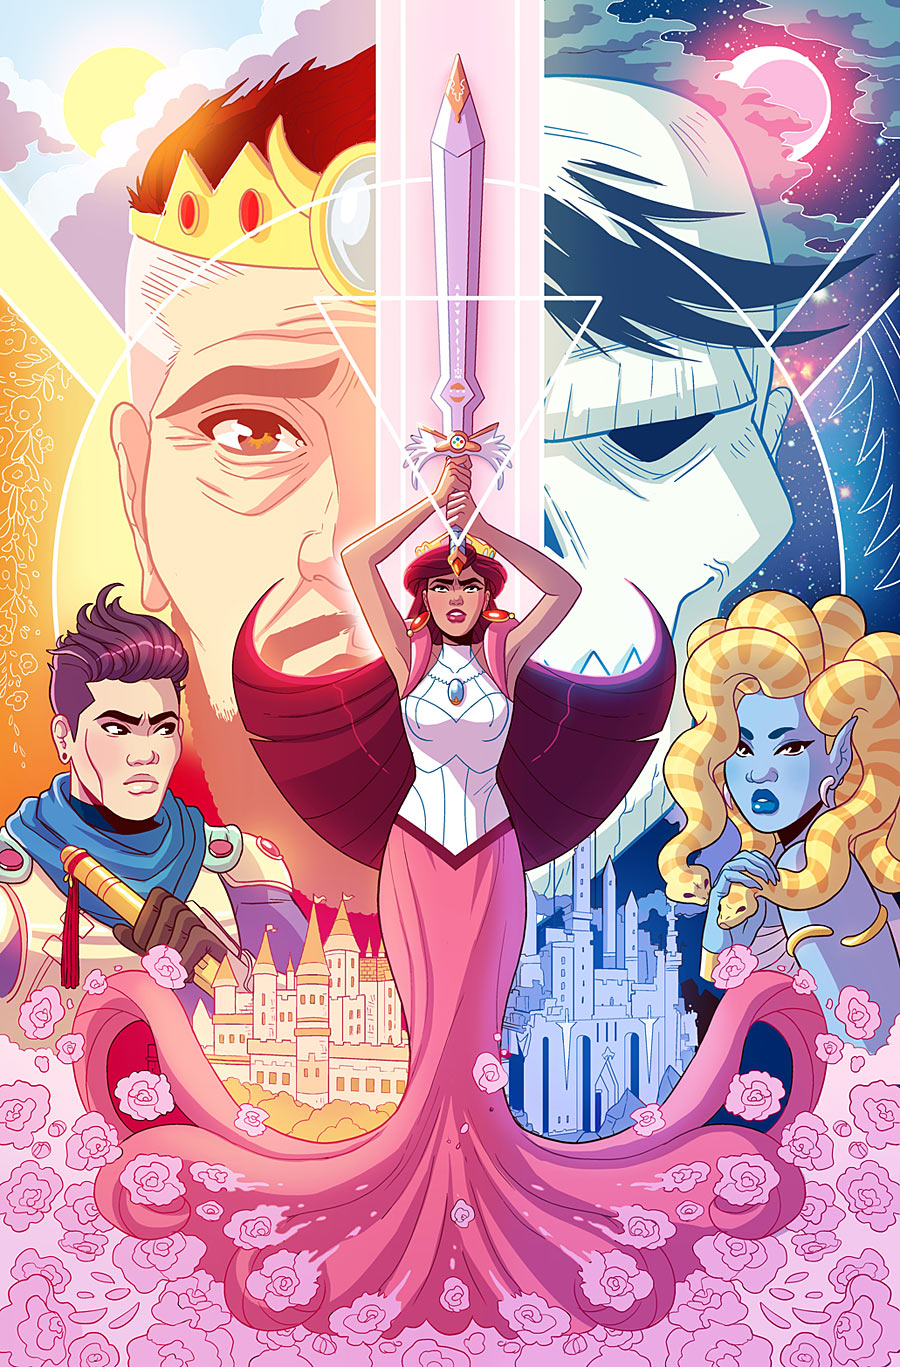 Another Castle #1 is the debut of a new all-ages fantasy series by writer Andrew Wheeler, artist/colorist Paulina Ganucheau, and letterer Jenny Vy Tran. Is it good?